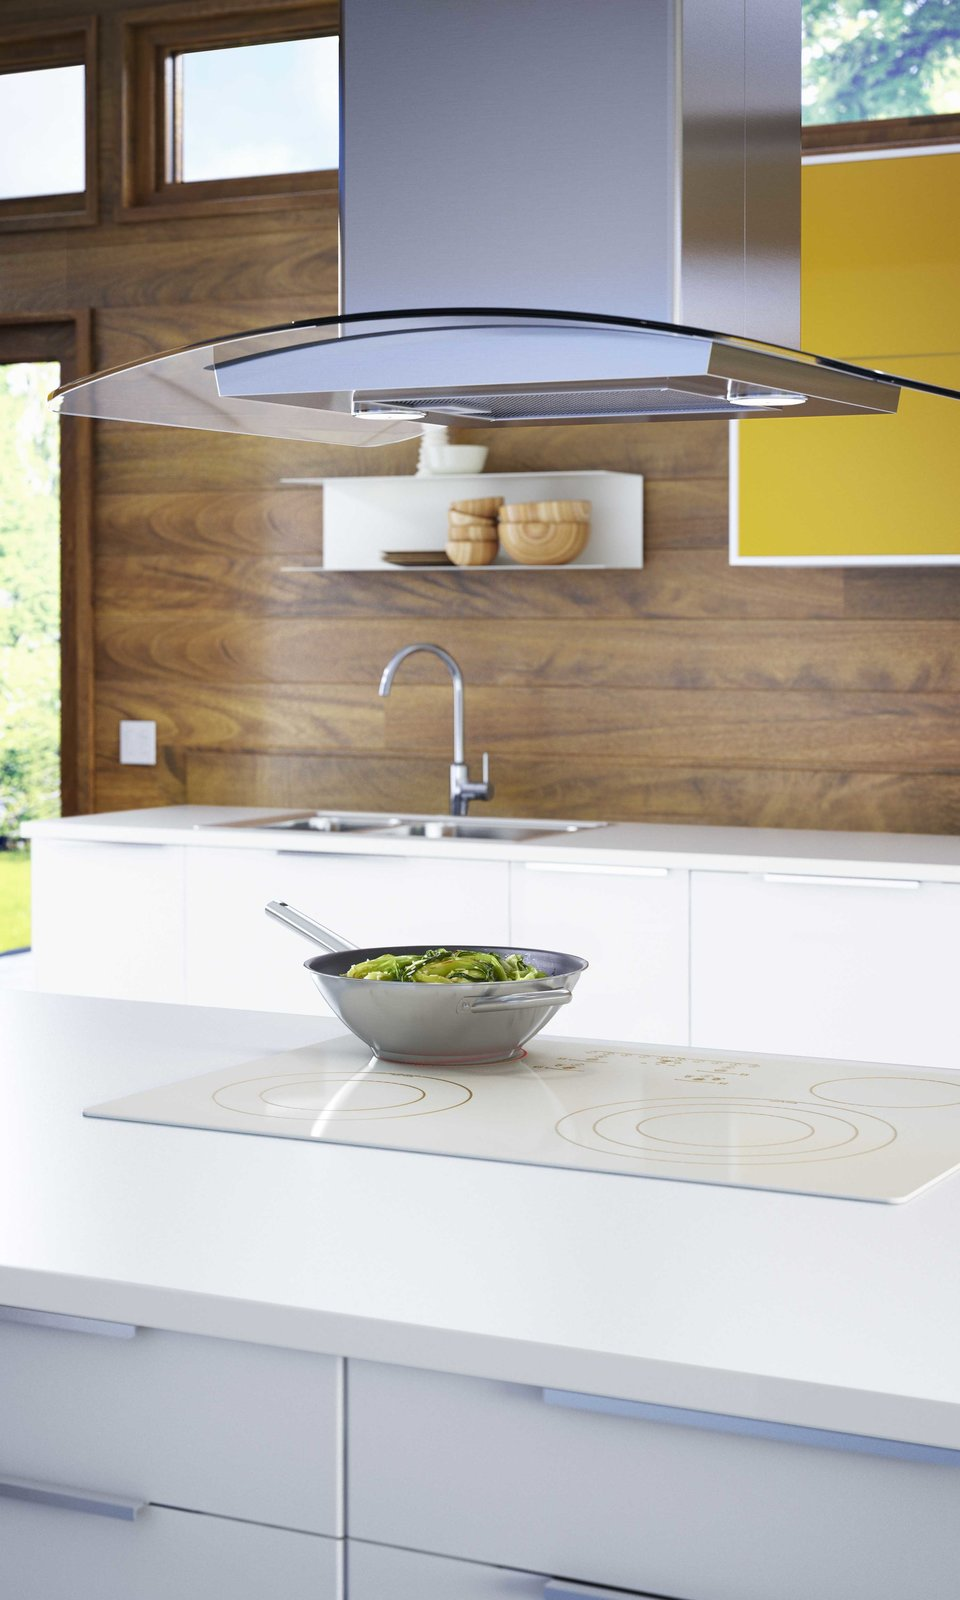 Induction cooktops, growing steadily in popularity due to their energy efficiency and speed, are part of the offering as well as as a selection of exhaust hoods. Tagged: Kitchen, Range, White Cabinet, Range Hood, and Colorful Cabinet.  Photo 4 of 7 in You Can Now Build Your Entire Kitchen with Ikea (Appliances Too!)